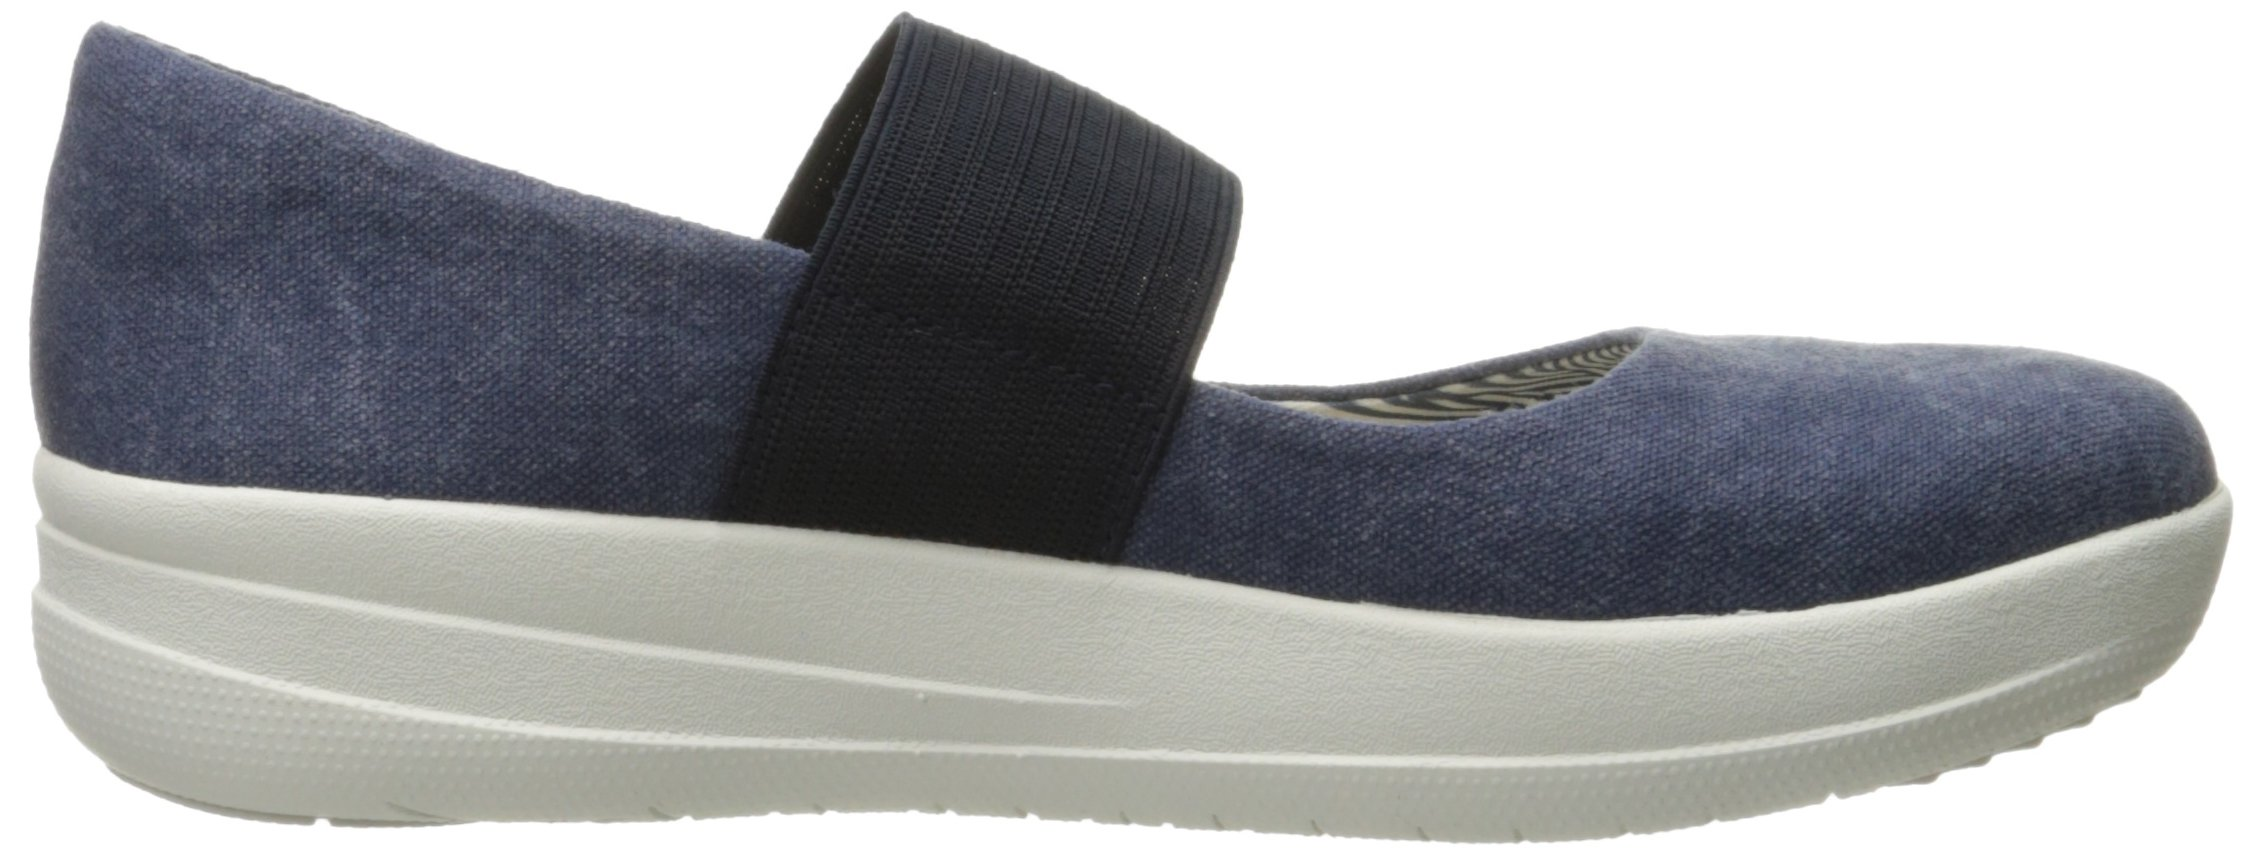 FitFlop Women's F-Sporty Mary Jane Flat, Midnight Navy, 6.5 M US by FitFlop (Image #7)